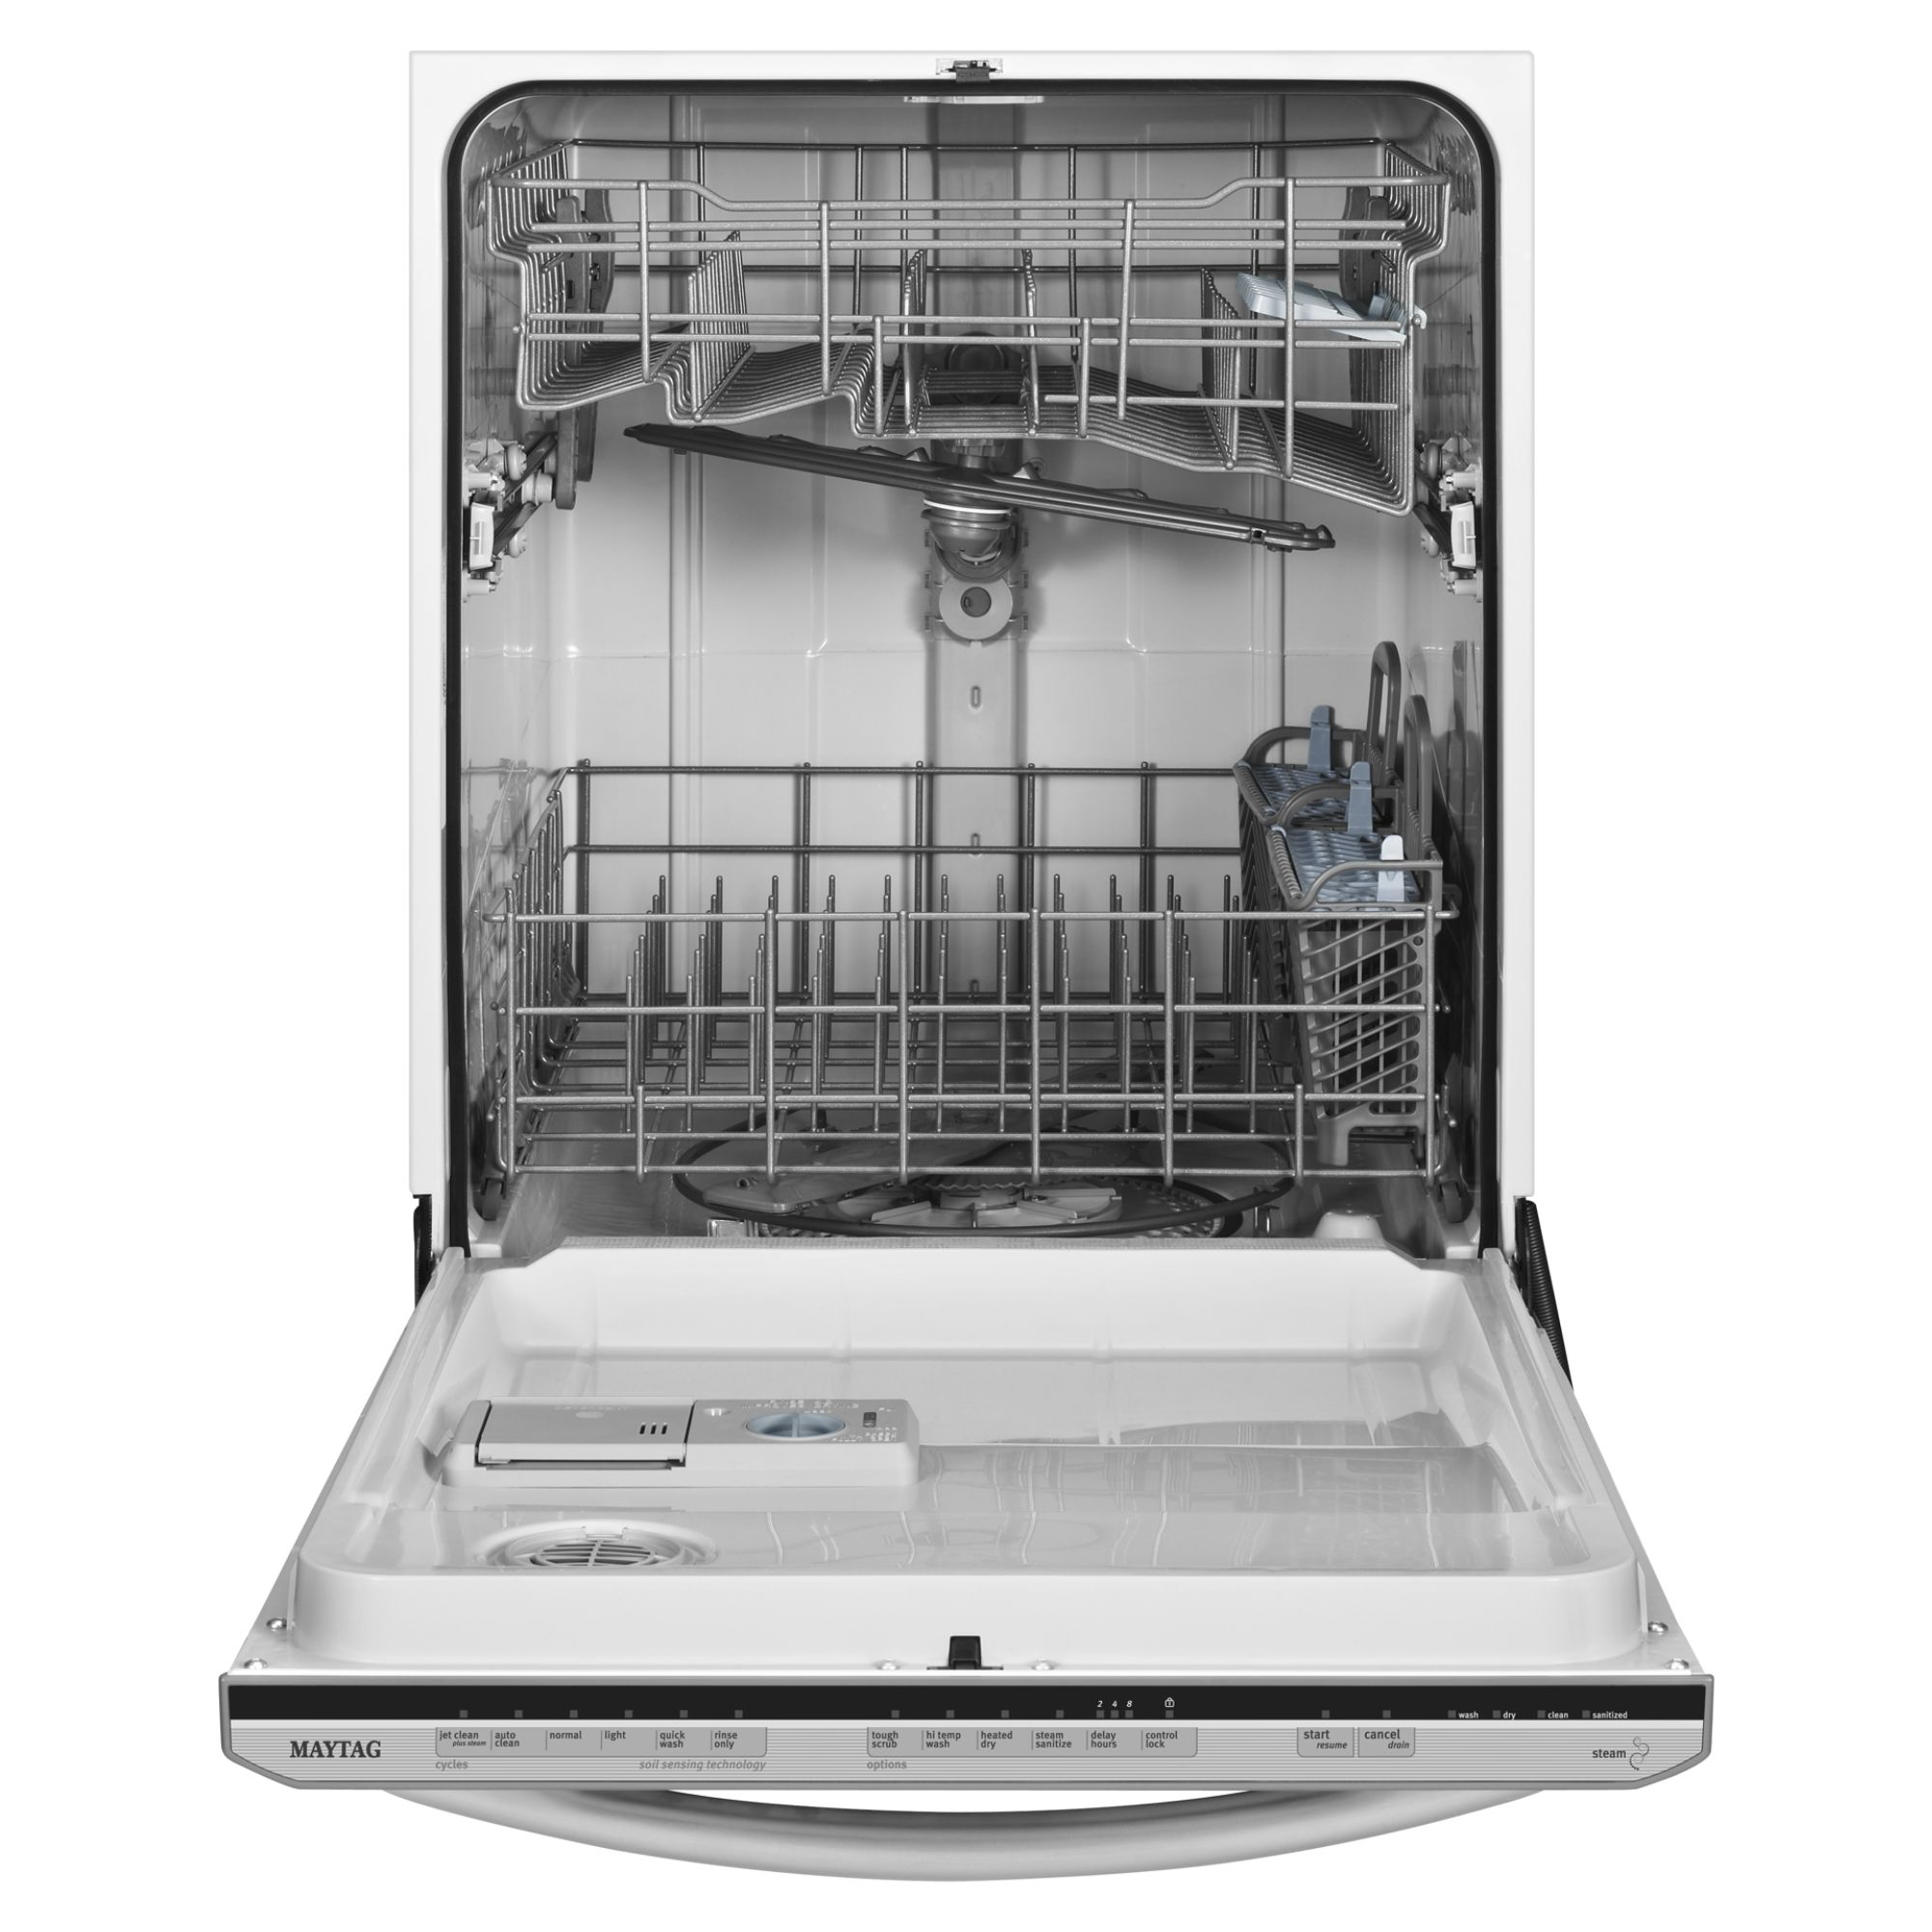 "Maytag 24"" Jetclean® Plus Dishwasher with Fully Integrated Controls - Stainless Steel"